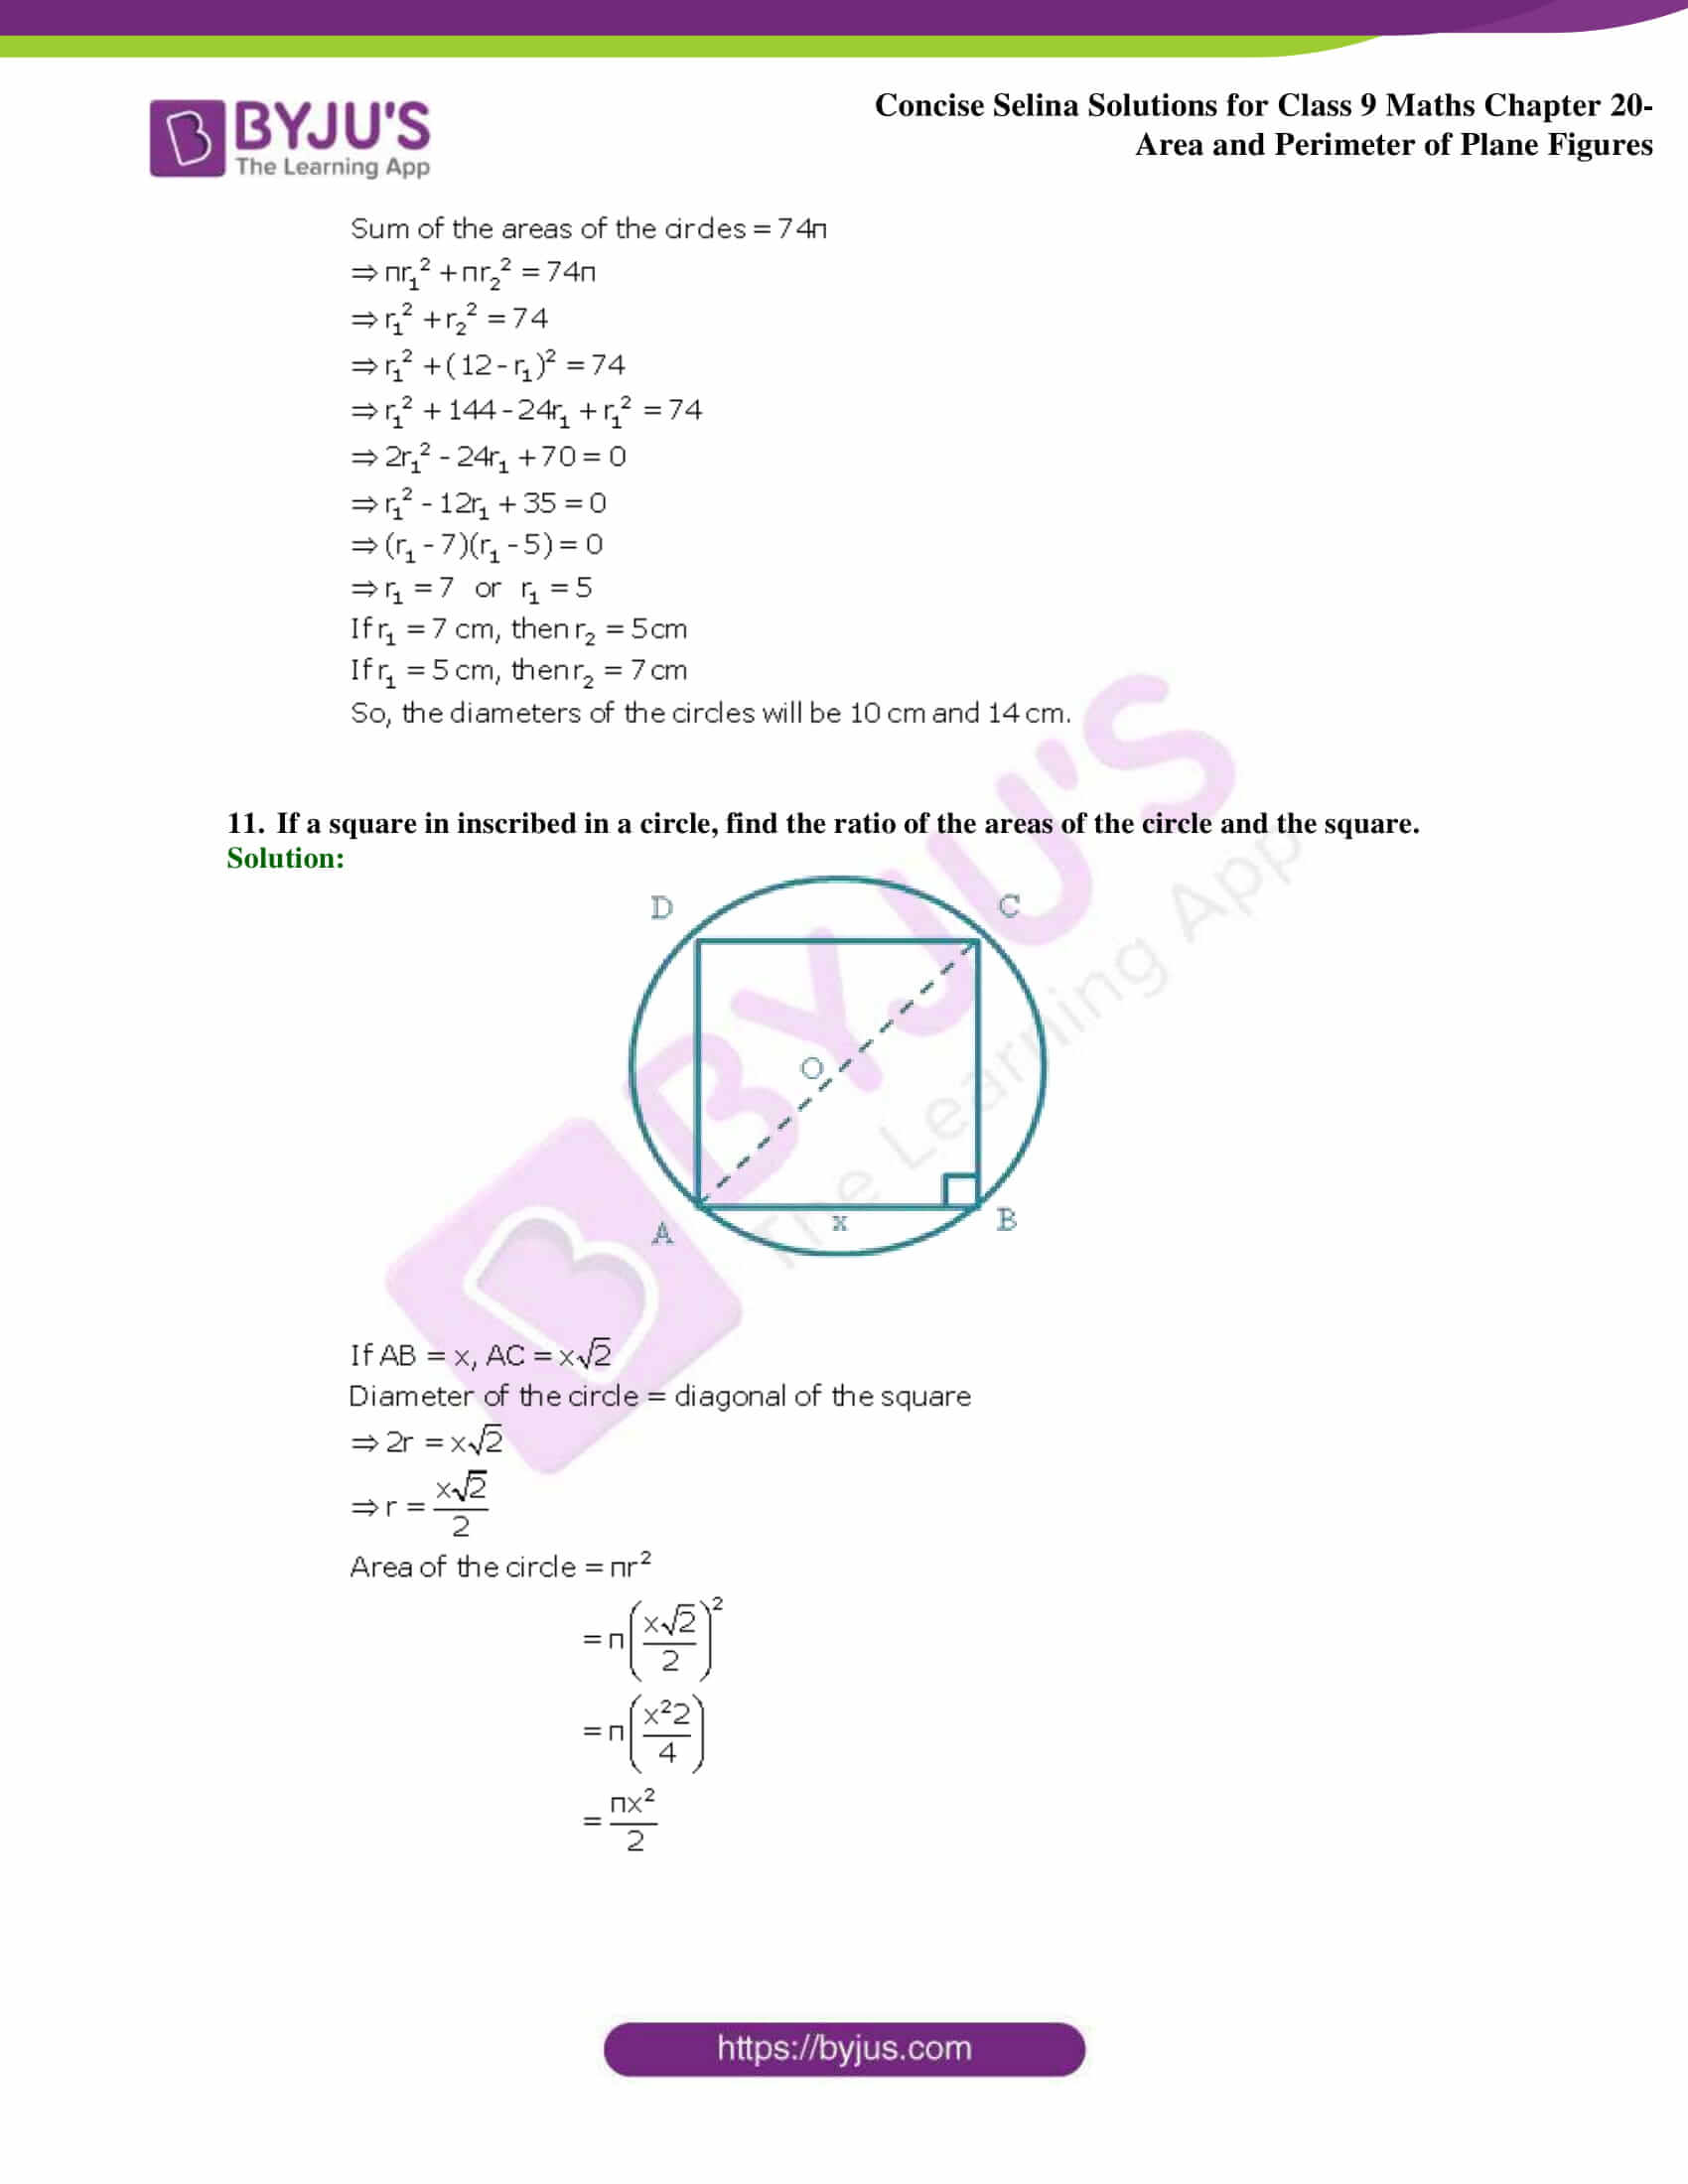 Concise Selina Solutions Class 9 Maths Chapter 20 Area and Perimeter of Plane part 50